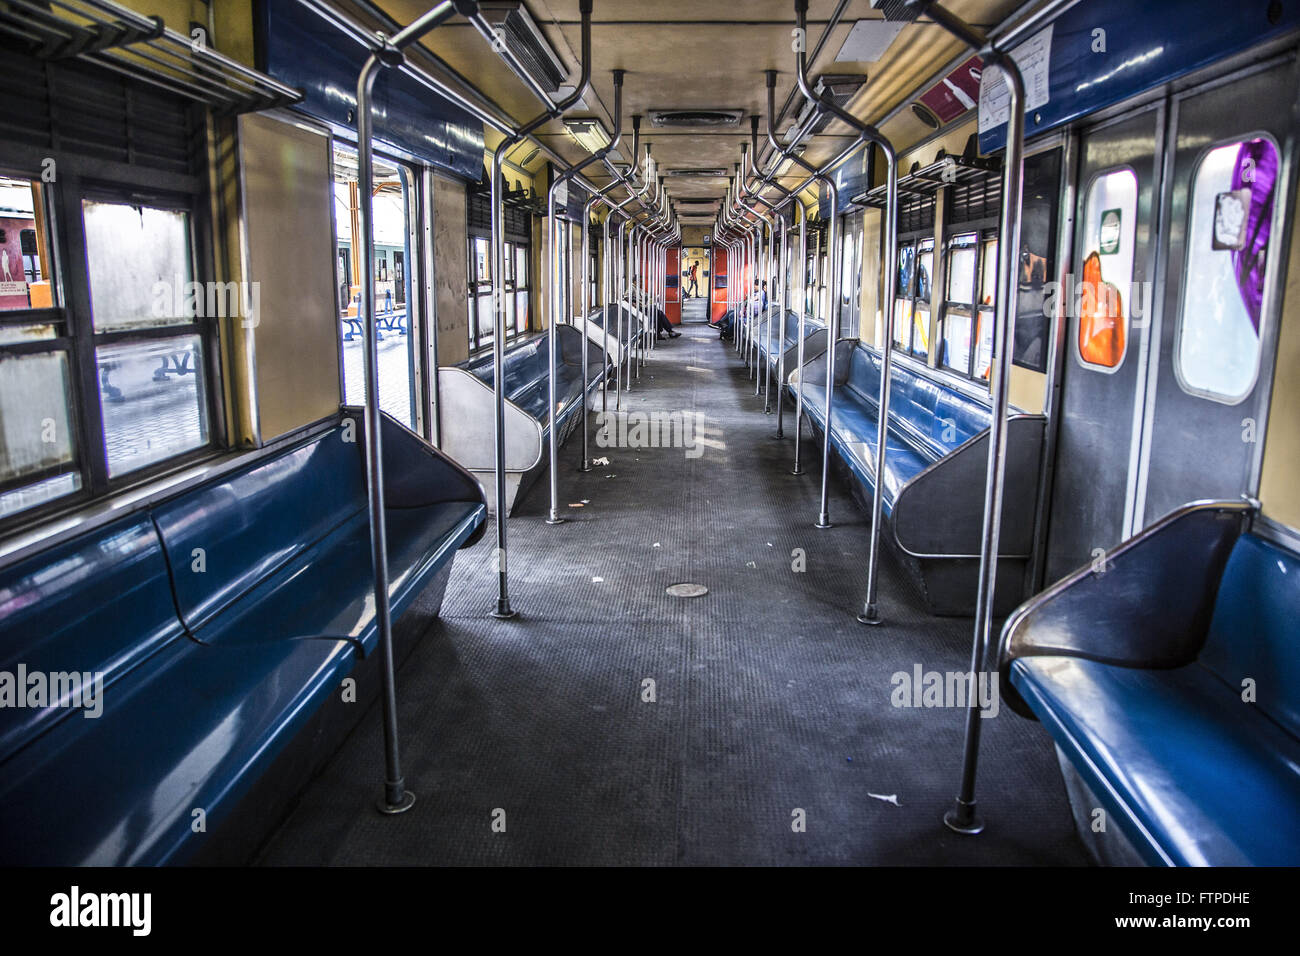 Inside view of the wagon train at Central Station platform of Brazil - Downtown - Stock Image